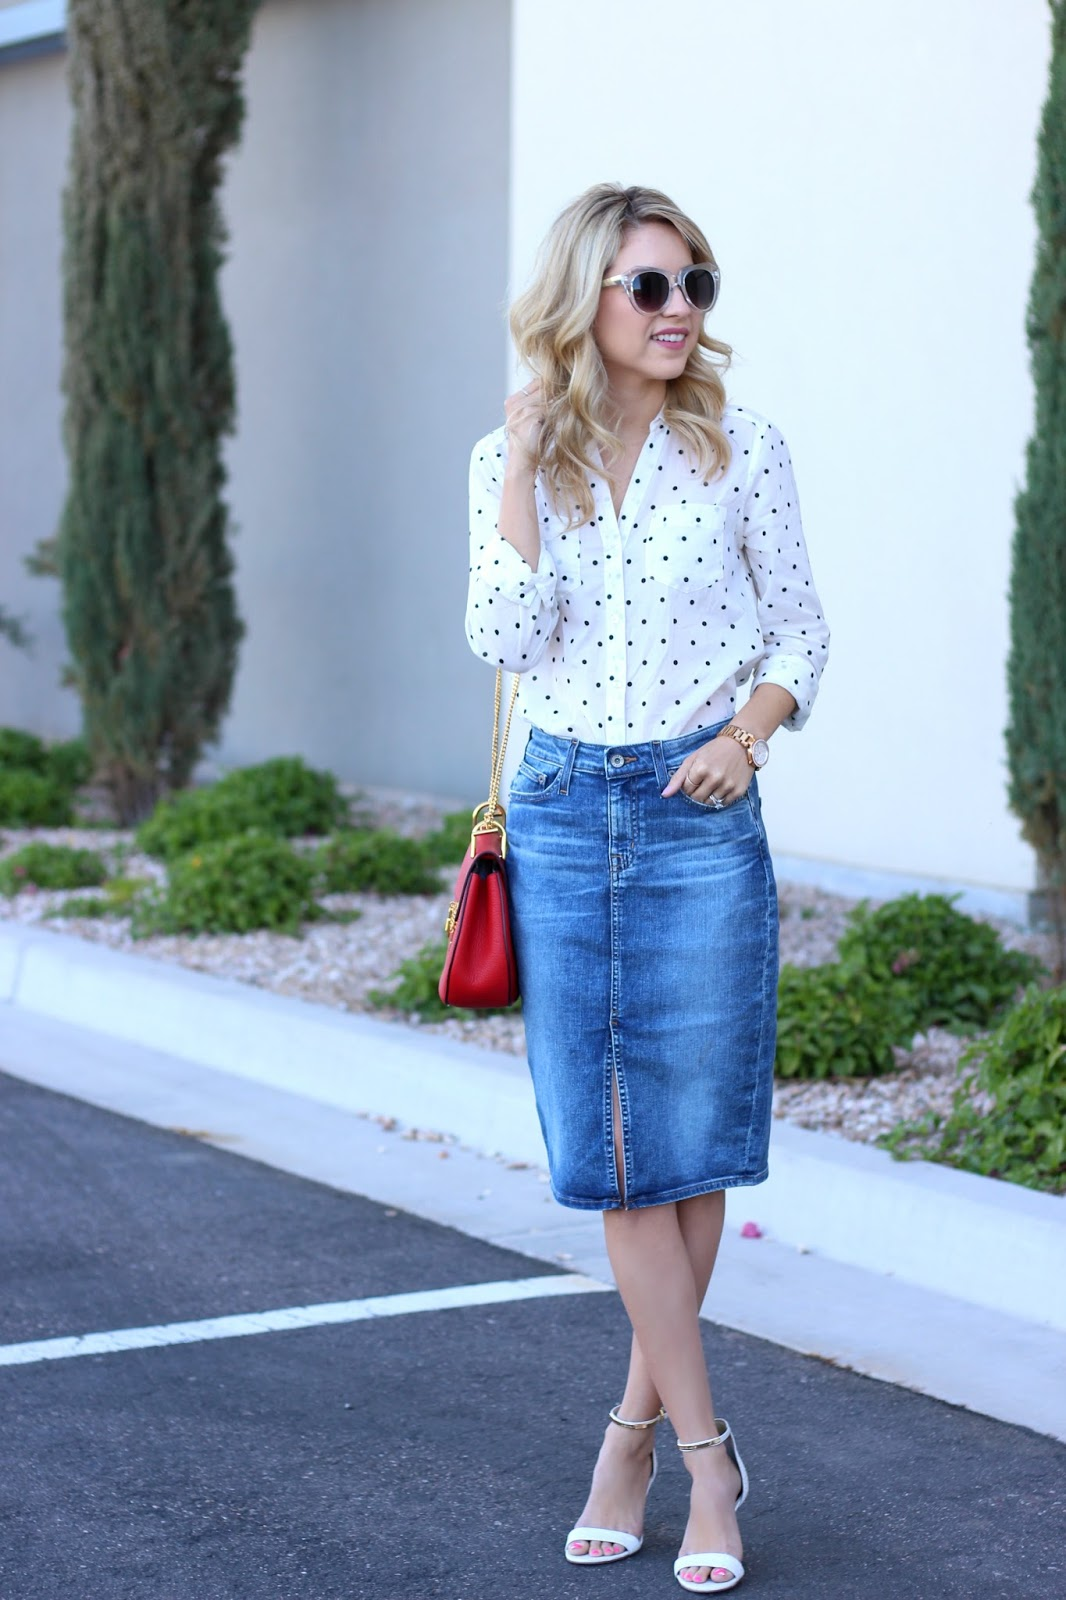 Long Jeans Skirt Outfit